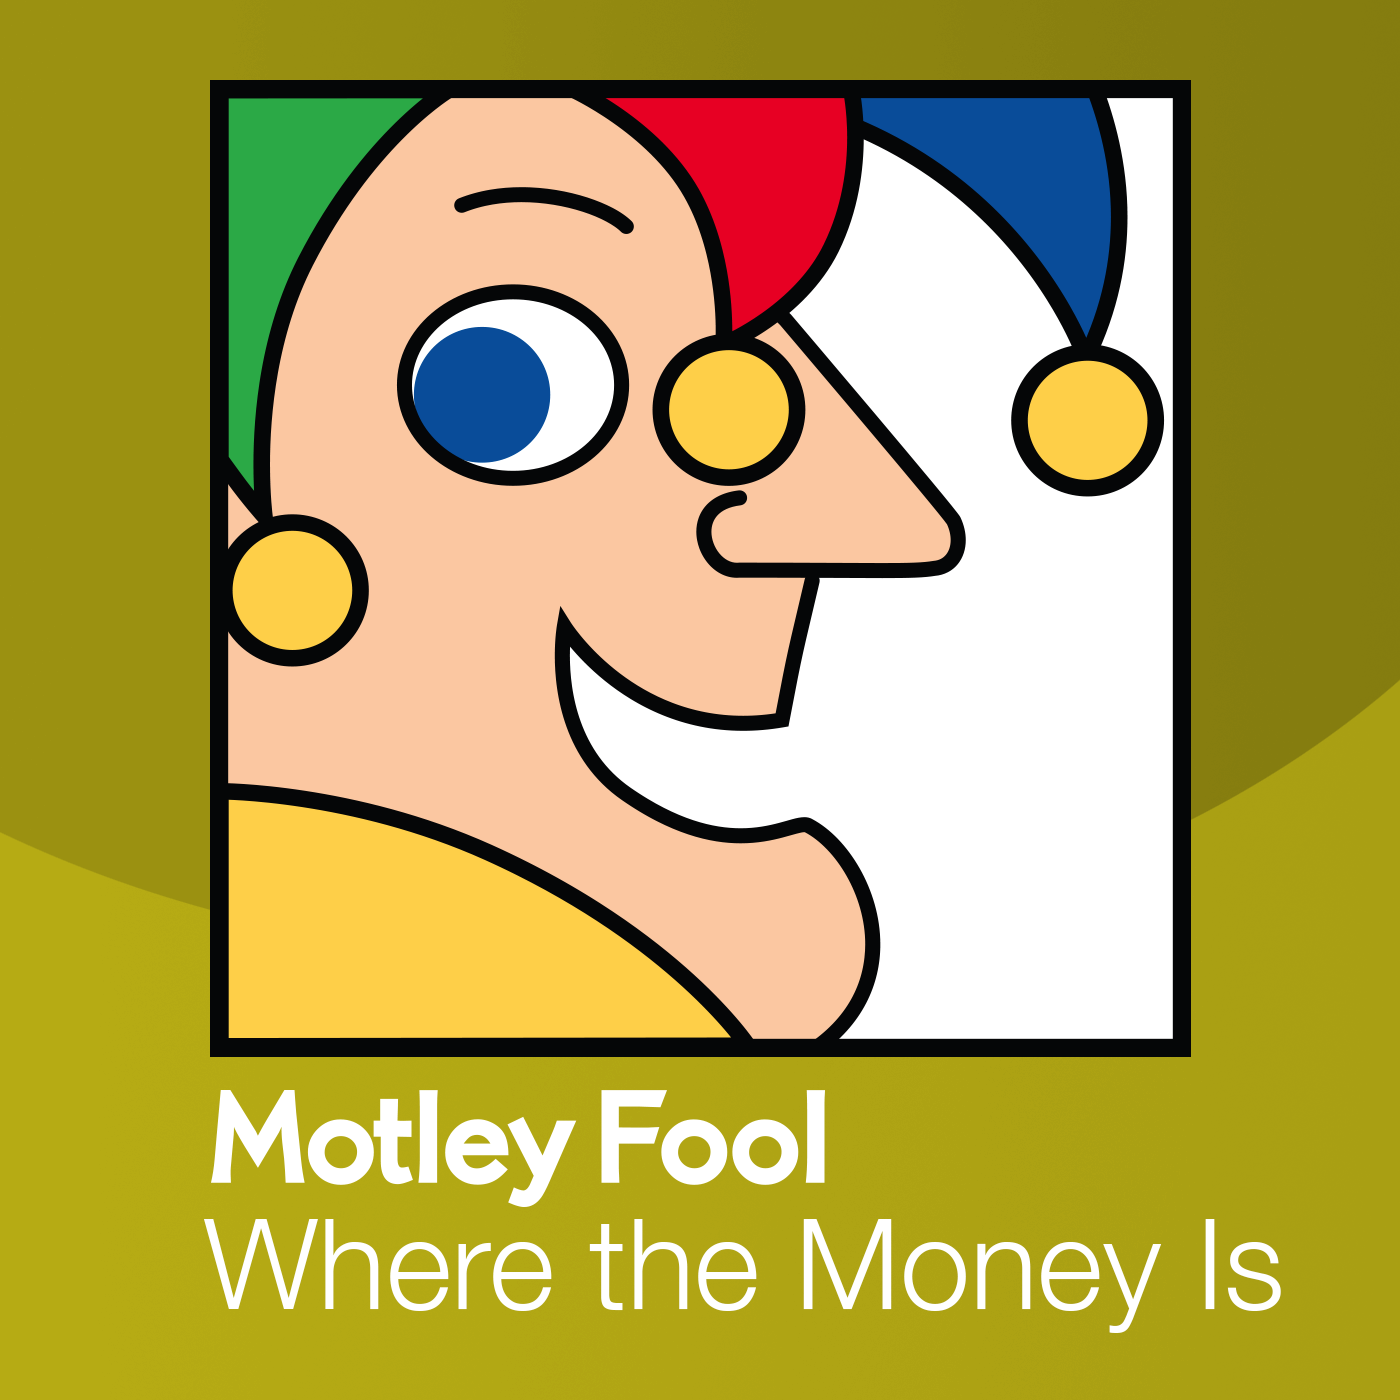 Where the Money Is 02.11.14